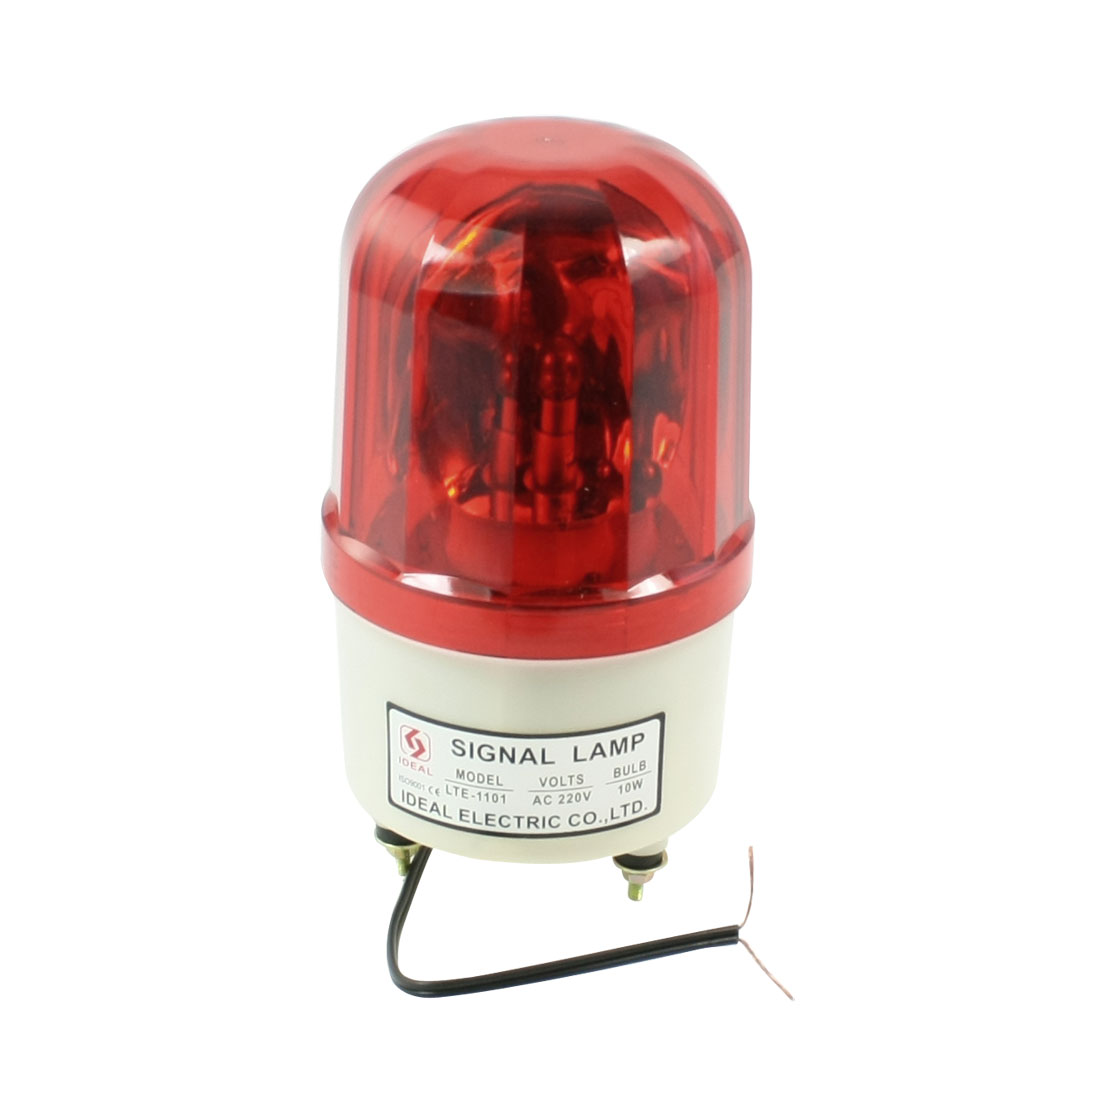 AC 220V 10W Dome Case Industrial Rotary Signal Light Lamp Red LTE-1101